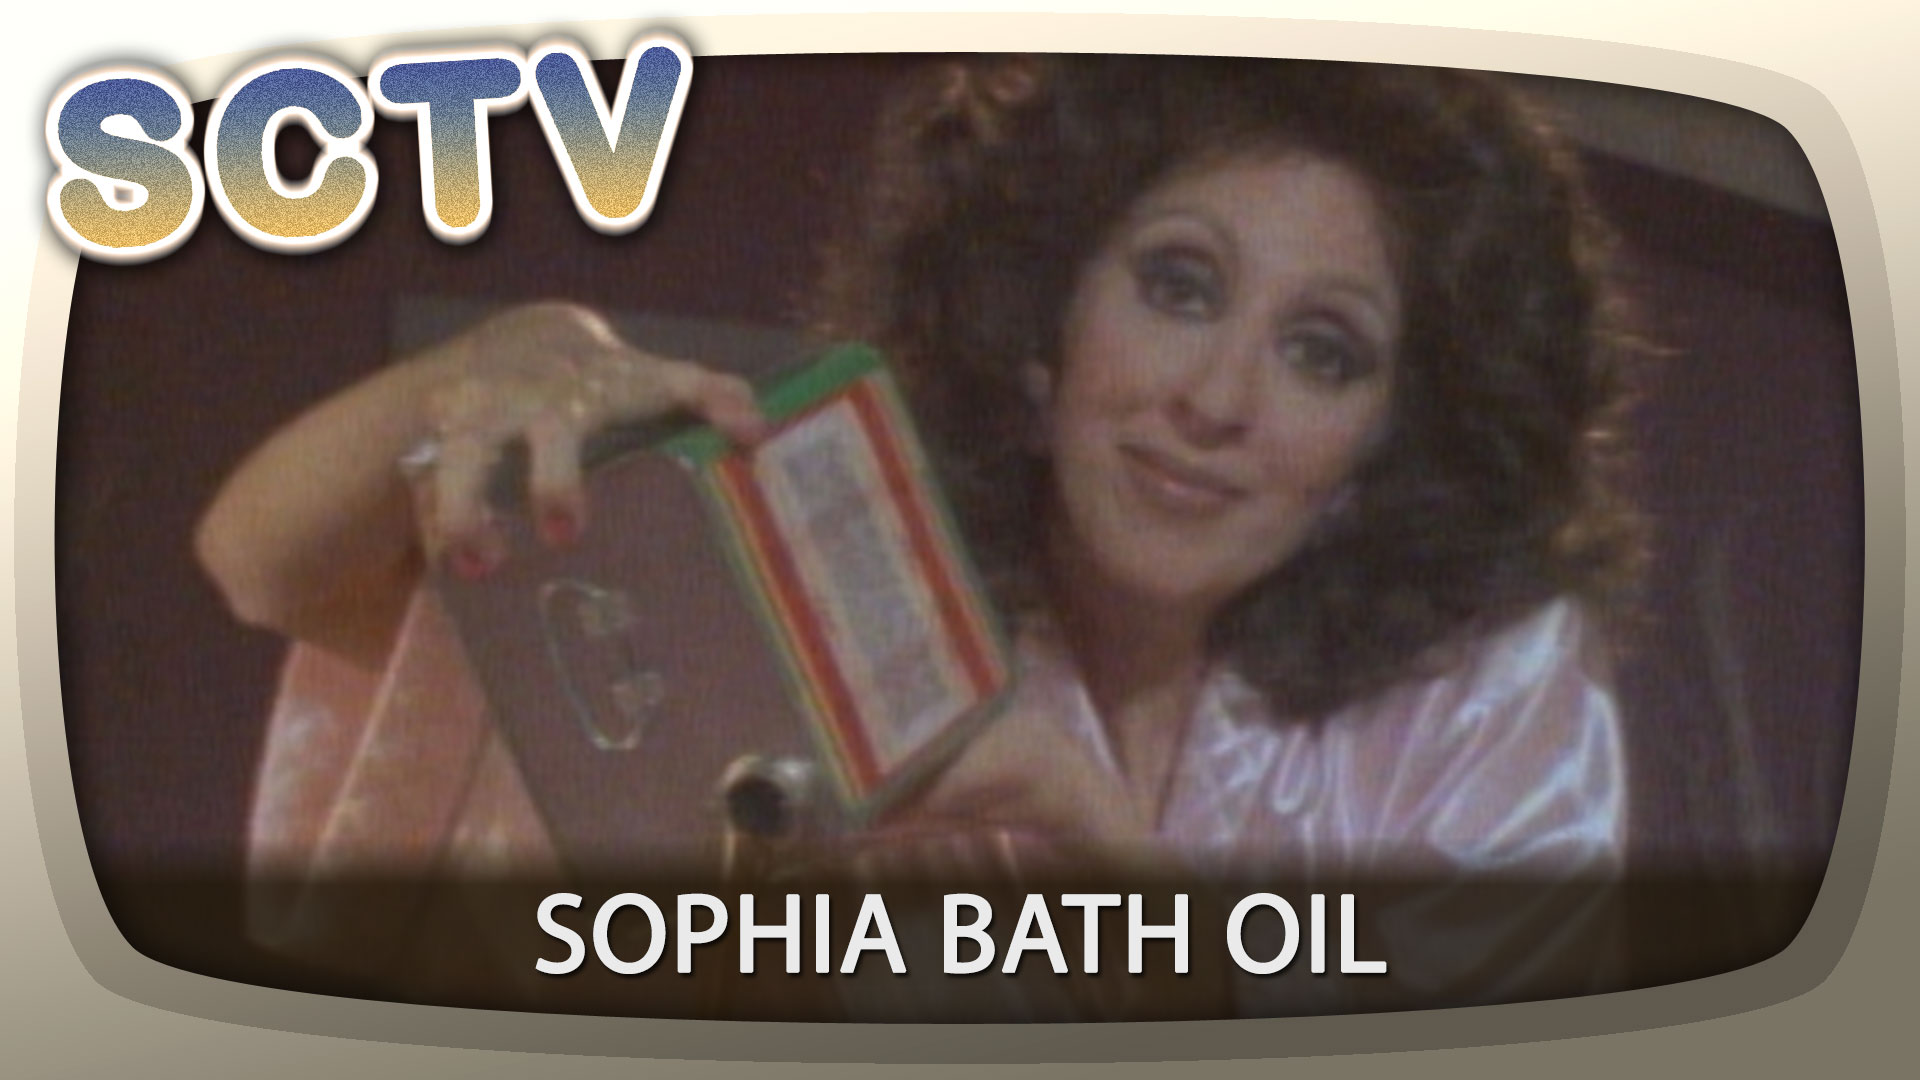 SCTV Sophia Bath Oil